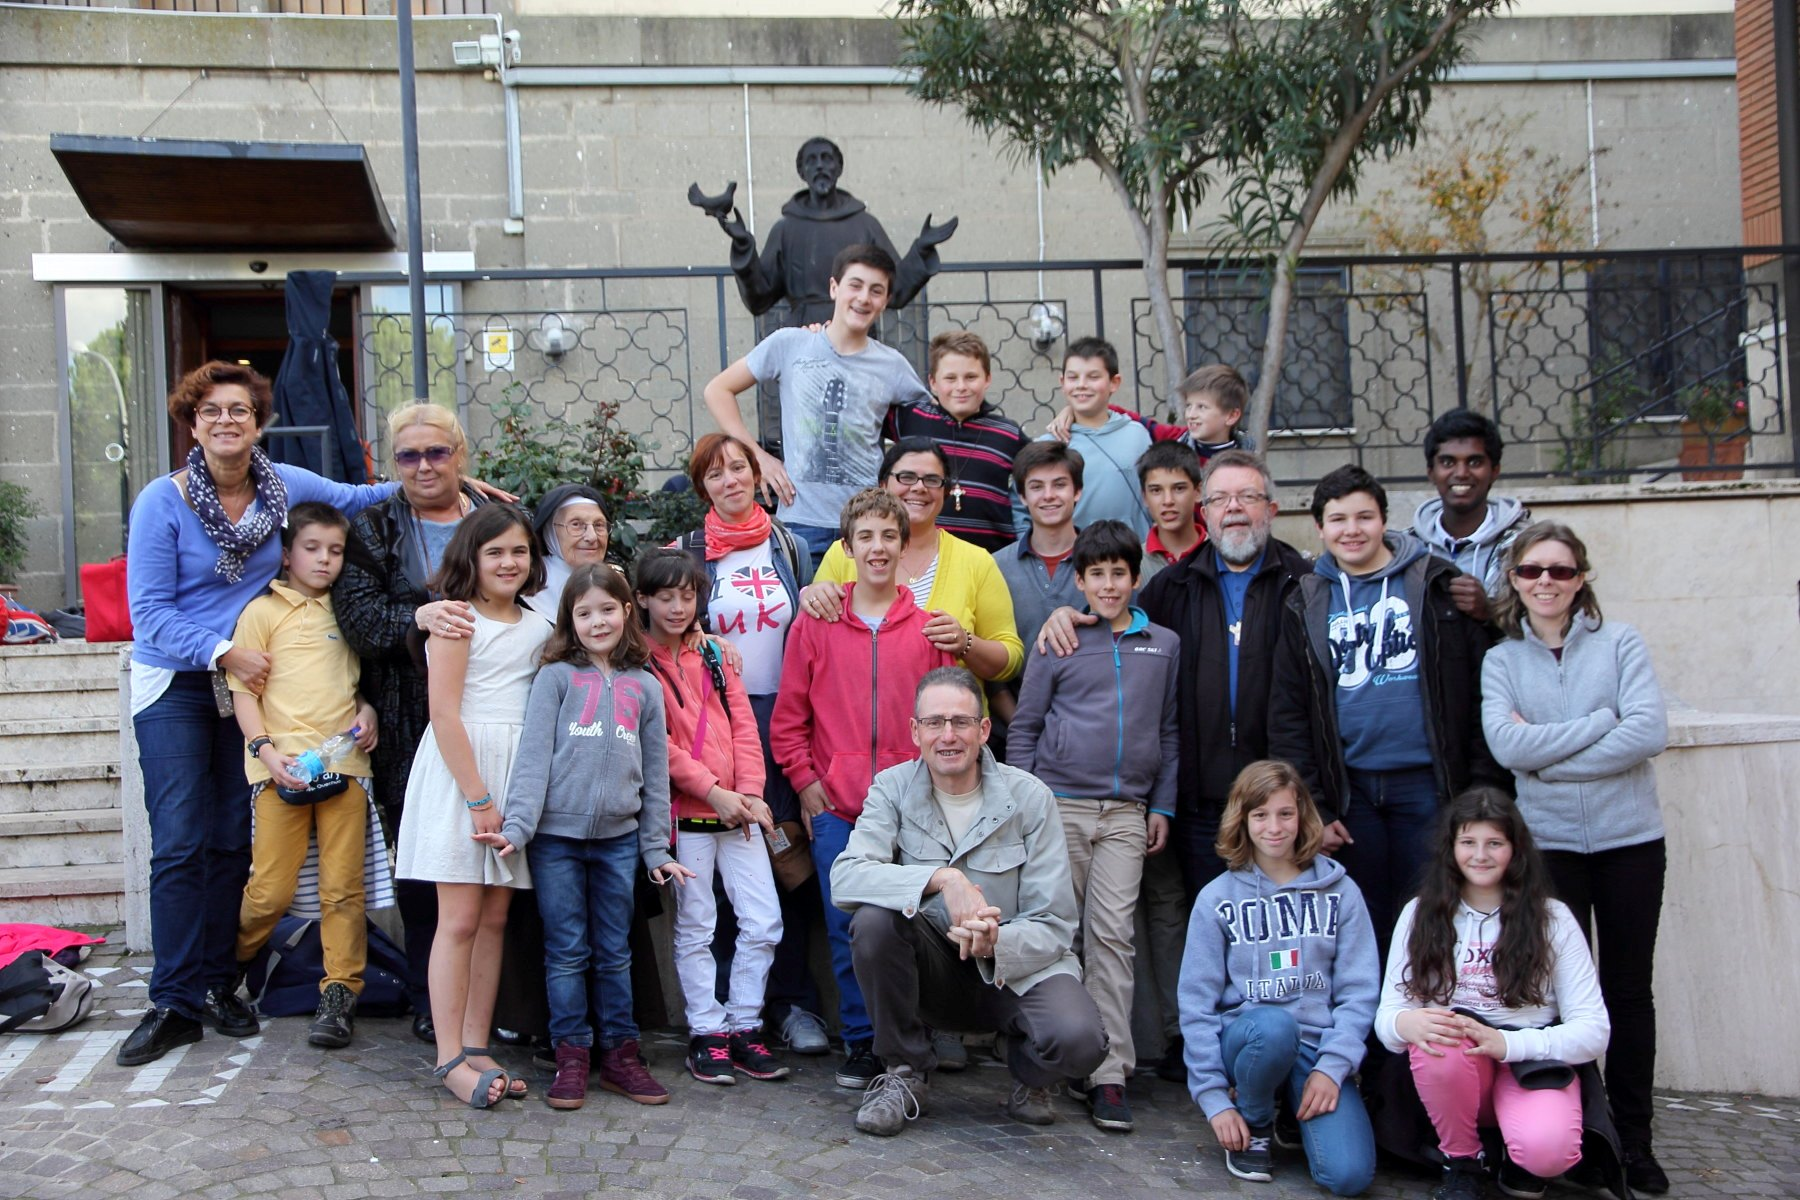 2015 servants dautel rome 2